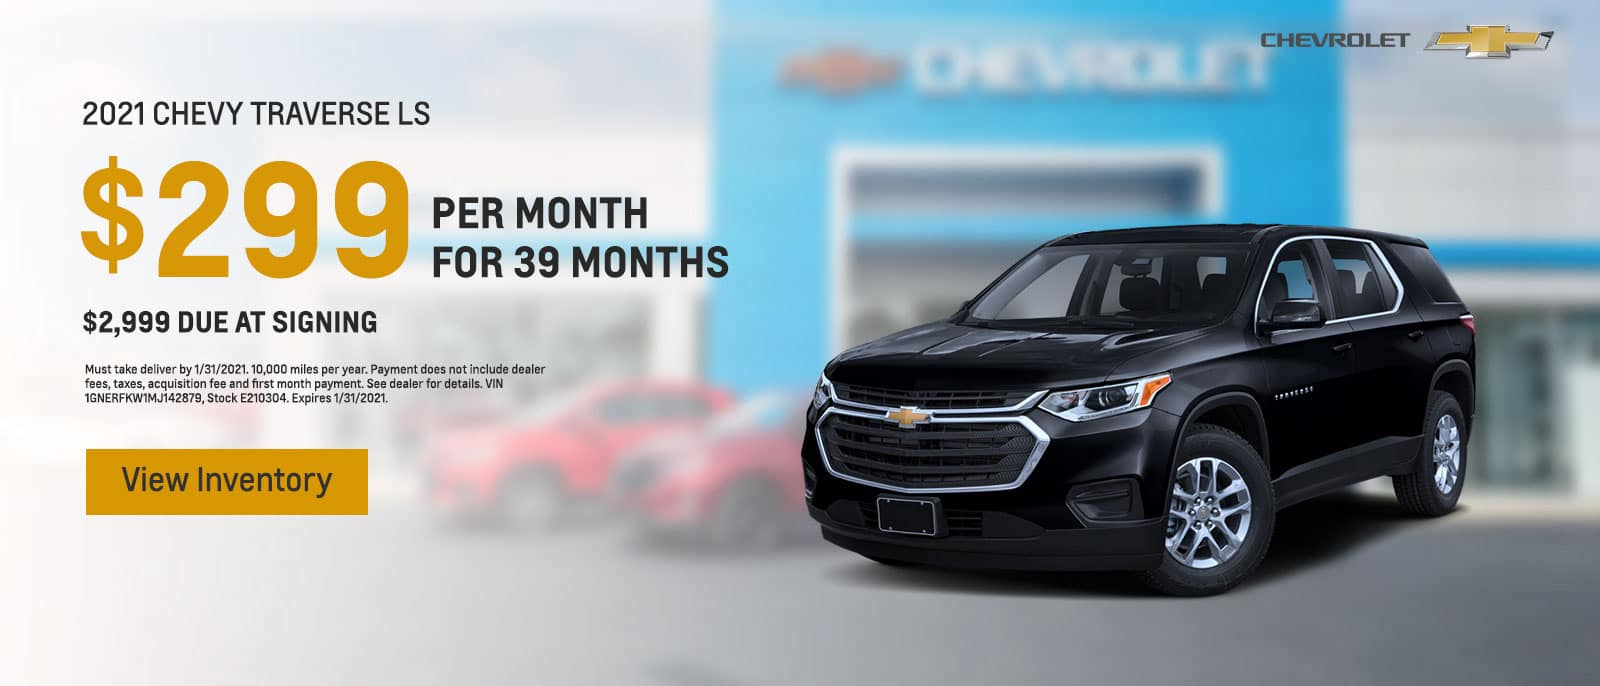 Jan 2021 - 2021 Chevy Traverse LS Lease $299/mo